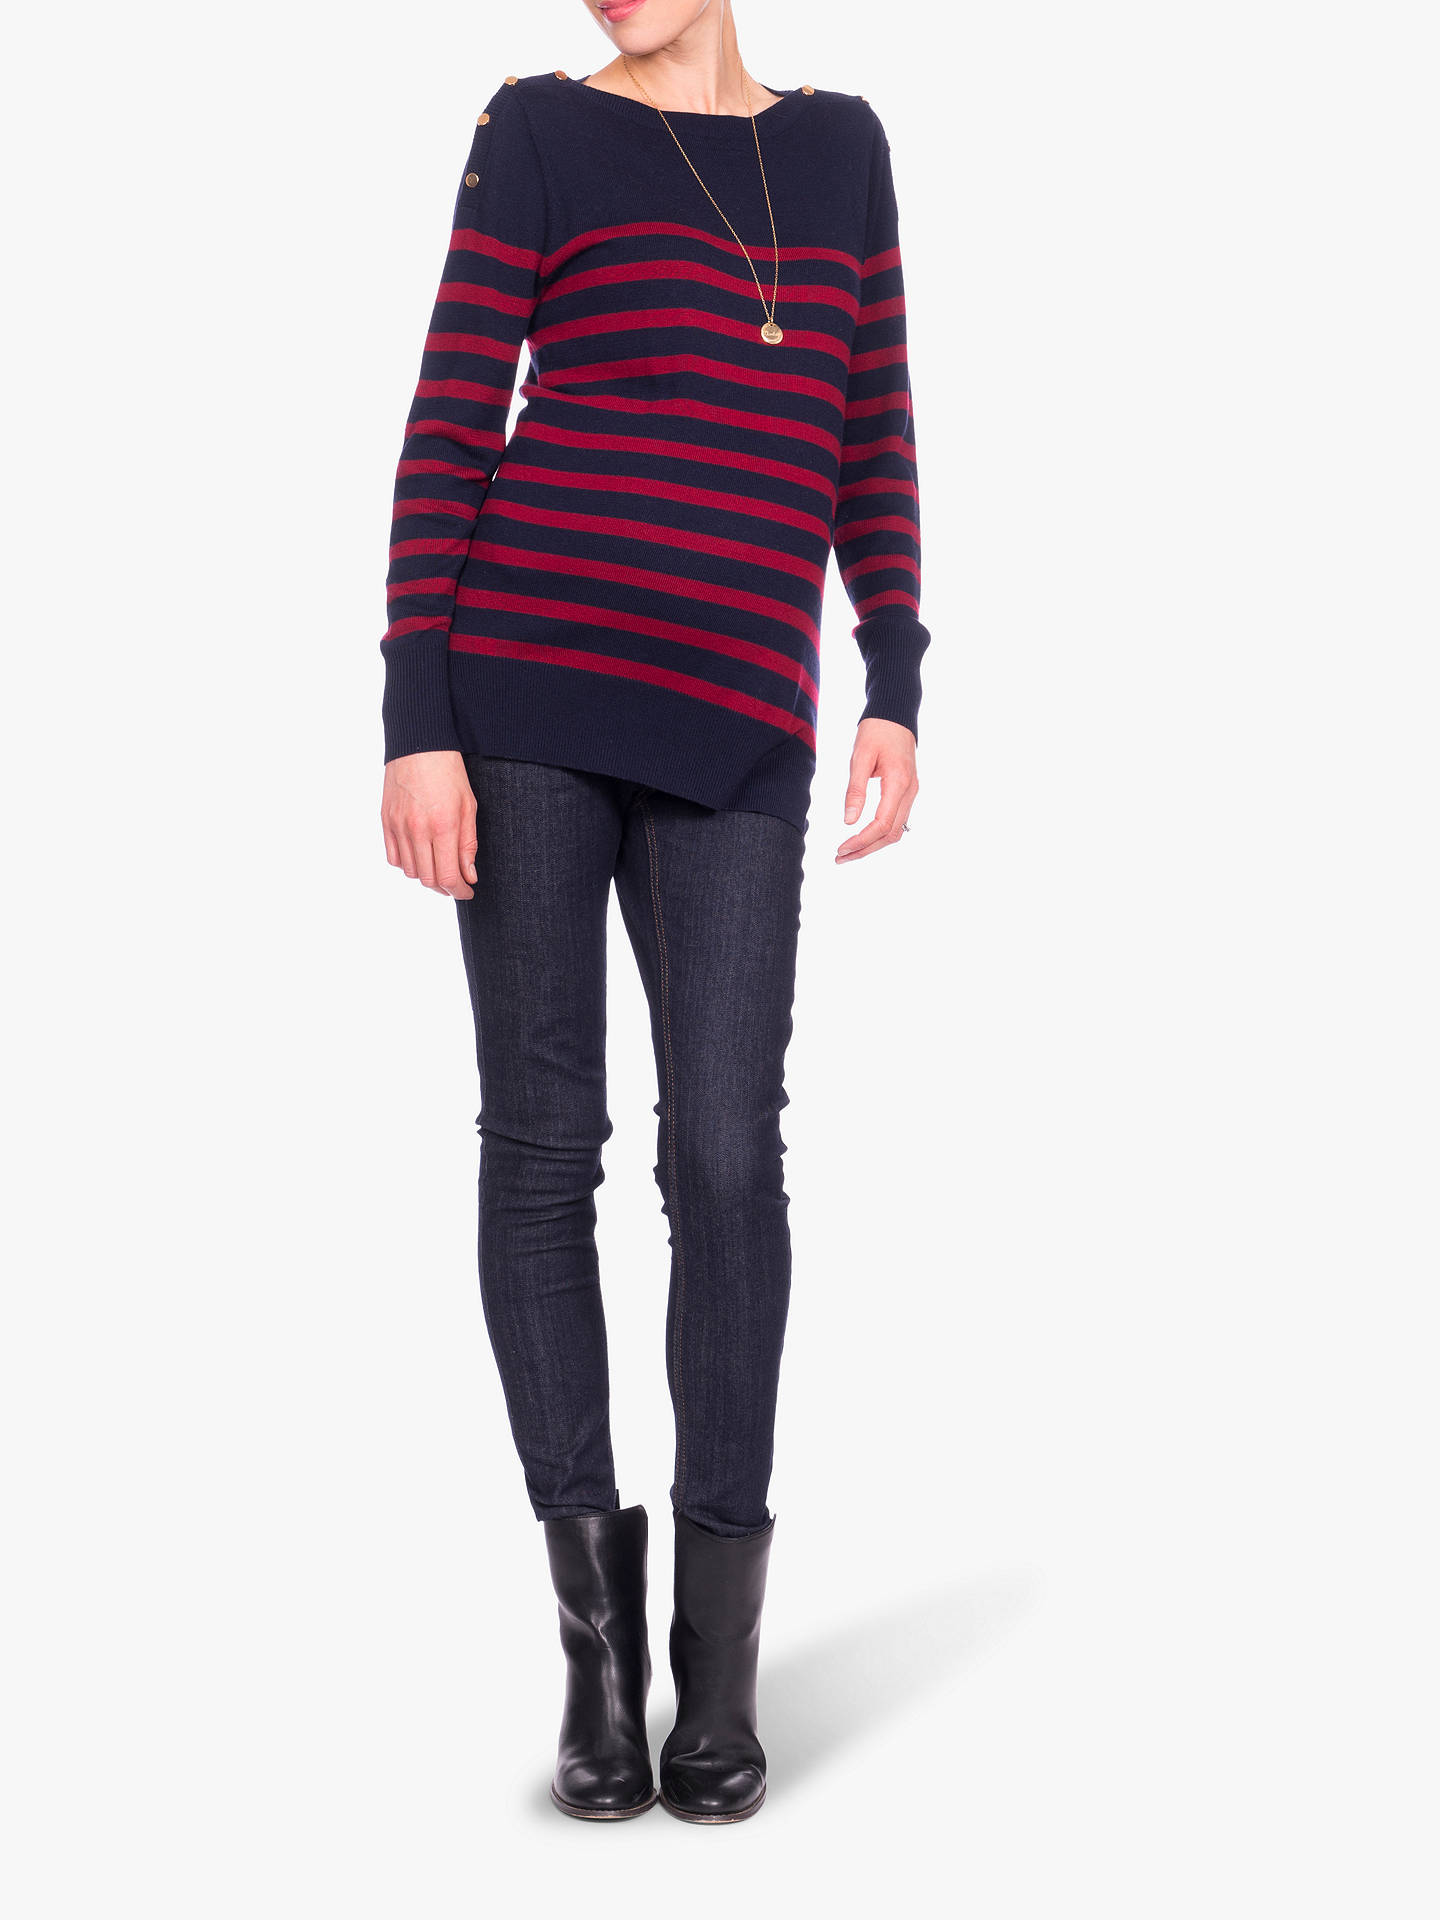 Buy Séraphine Evelyn Stripe Knit Maternity Jumper, Navy/Red, S Online at johnlewis.com